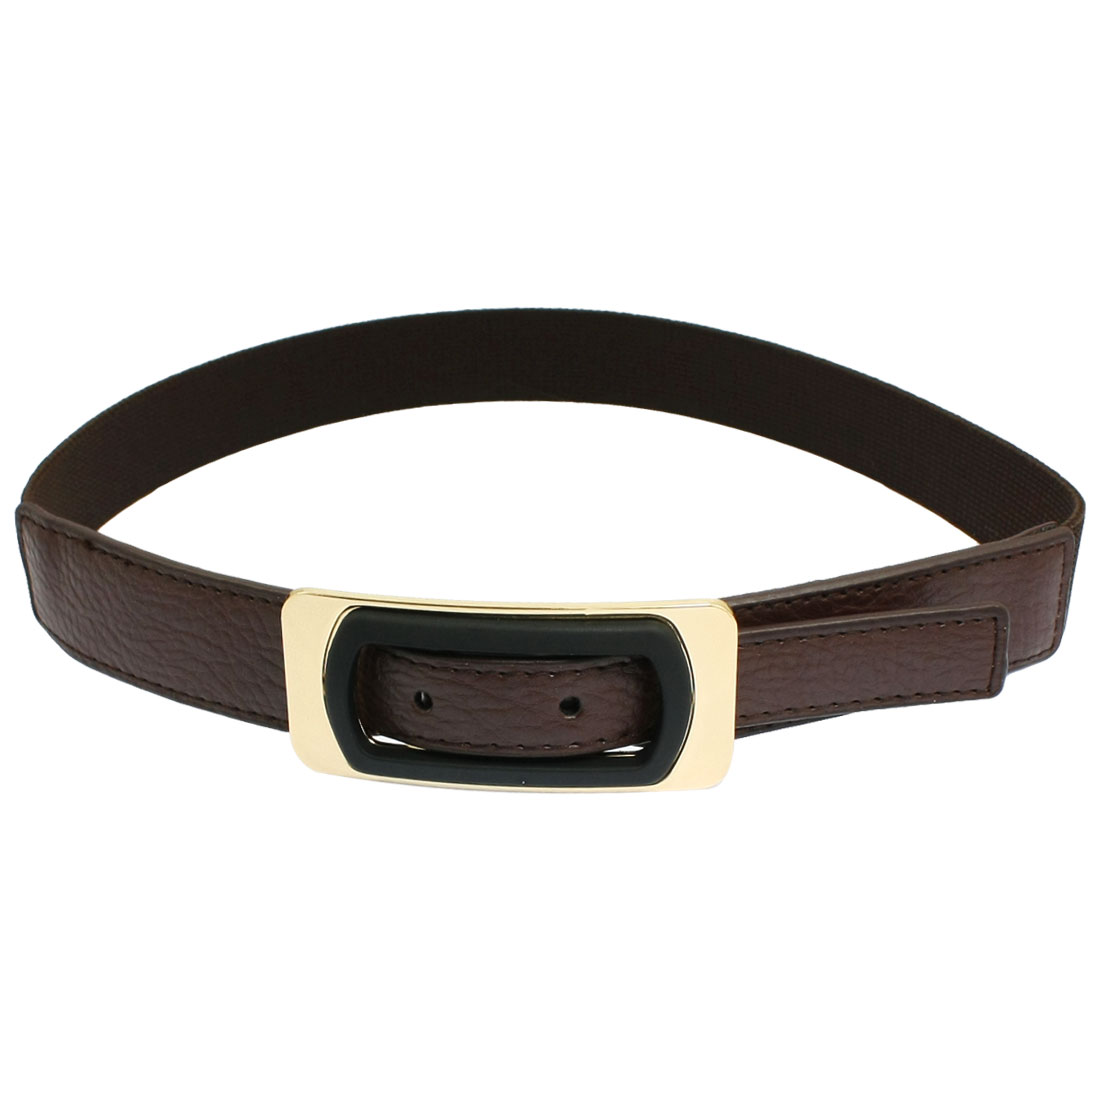 Lady Rectangle Buckle Faux Leather Coffee Color Elastic Waistband Strap Cinch